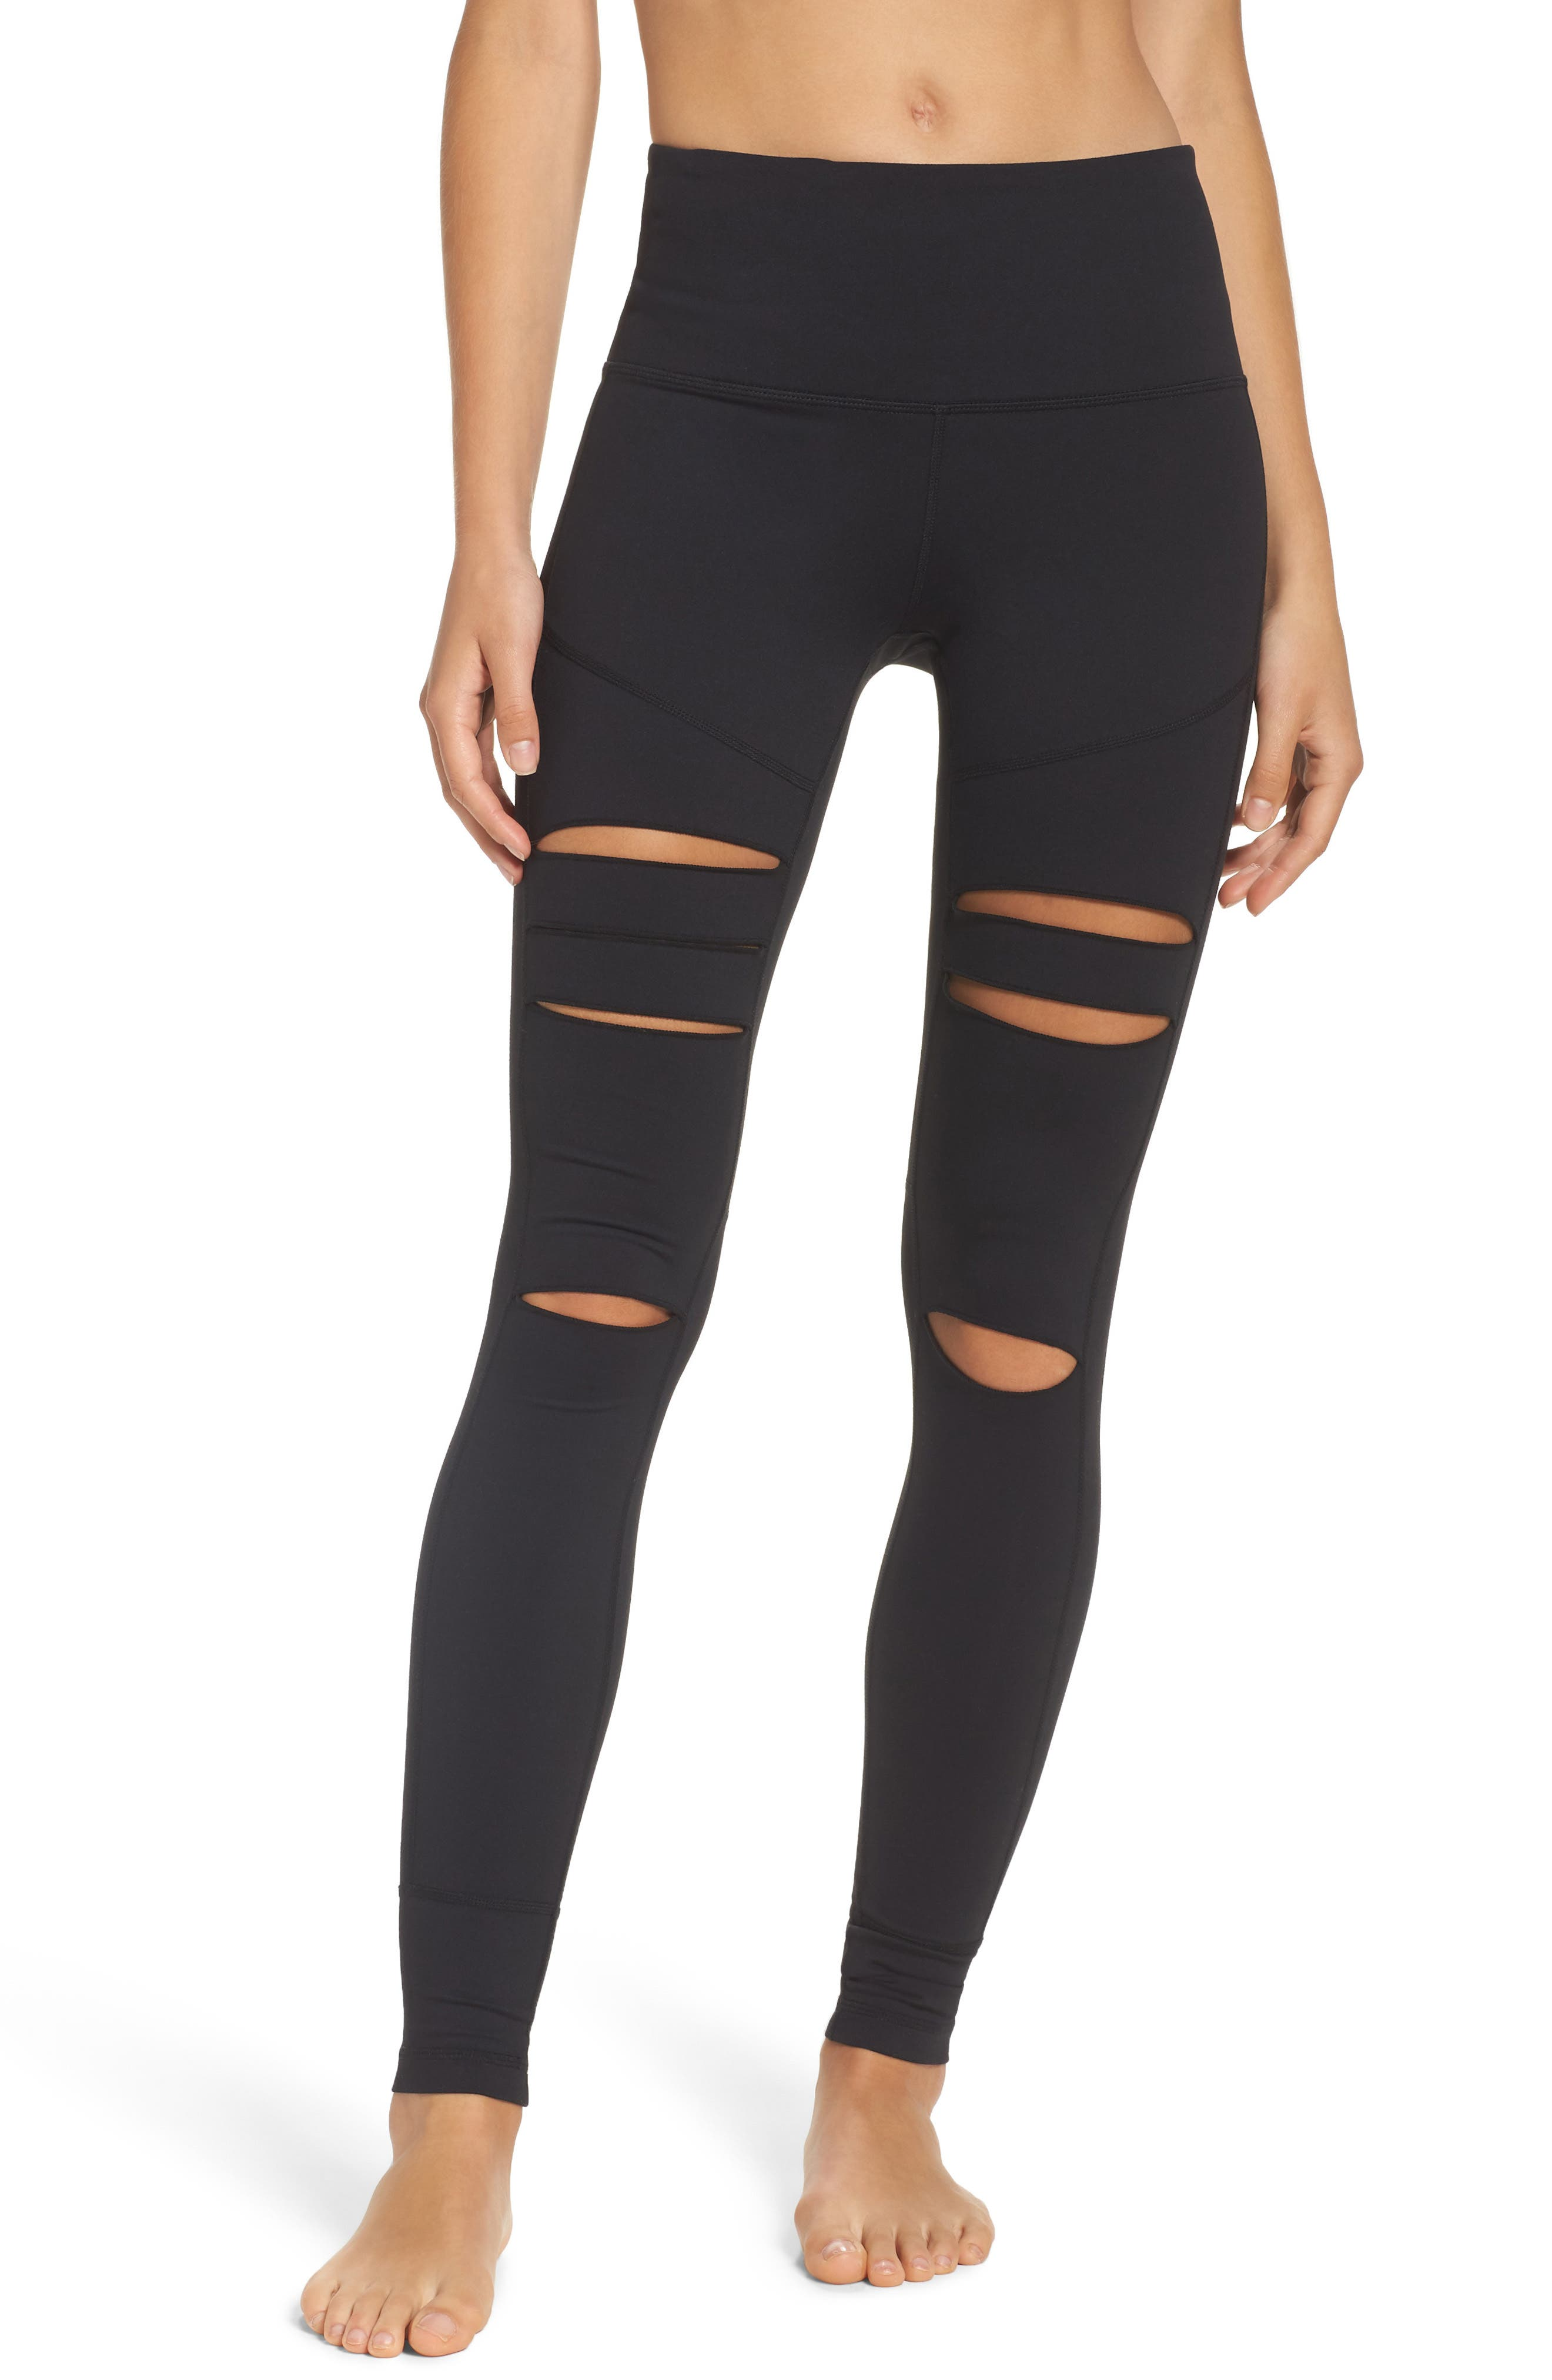 Alternate Image 1 Selected - Zella Cece High Waist Open Knee Leggings